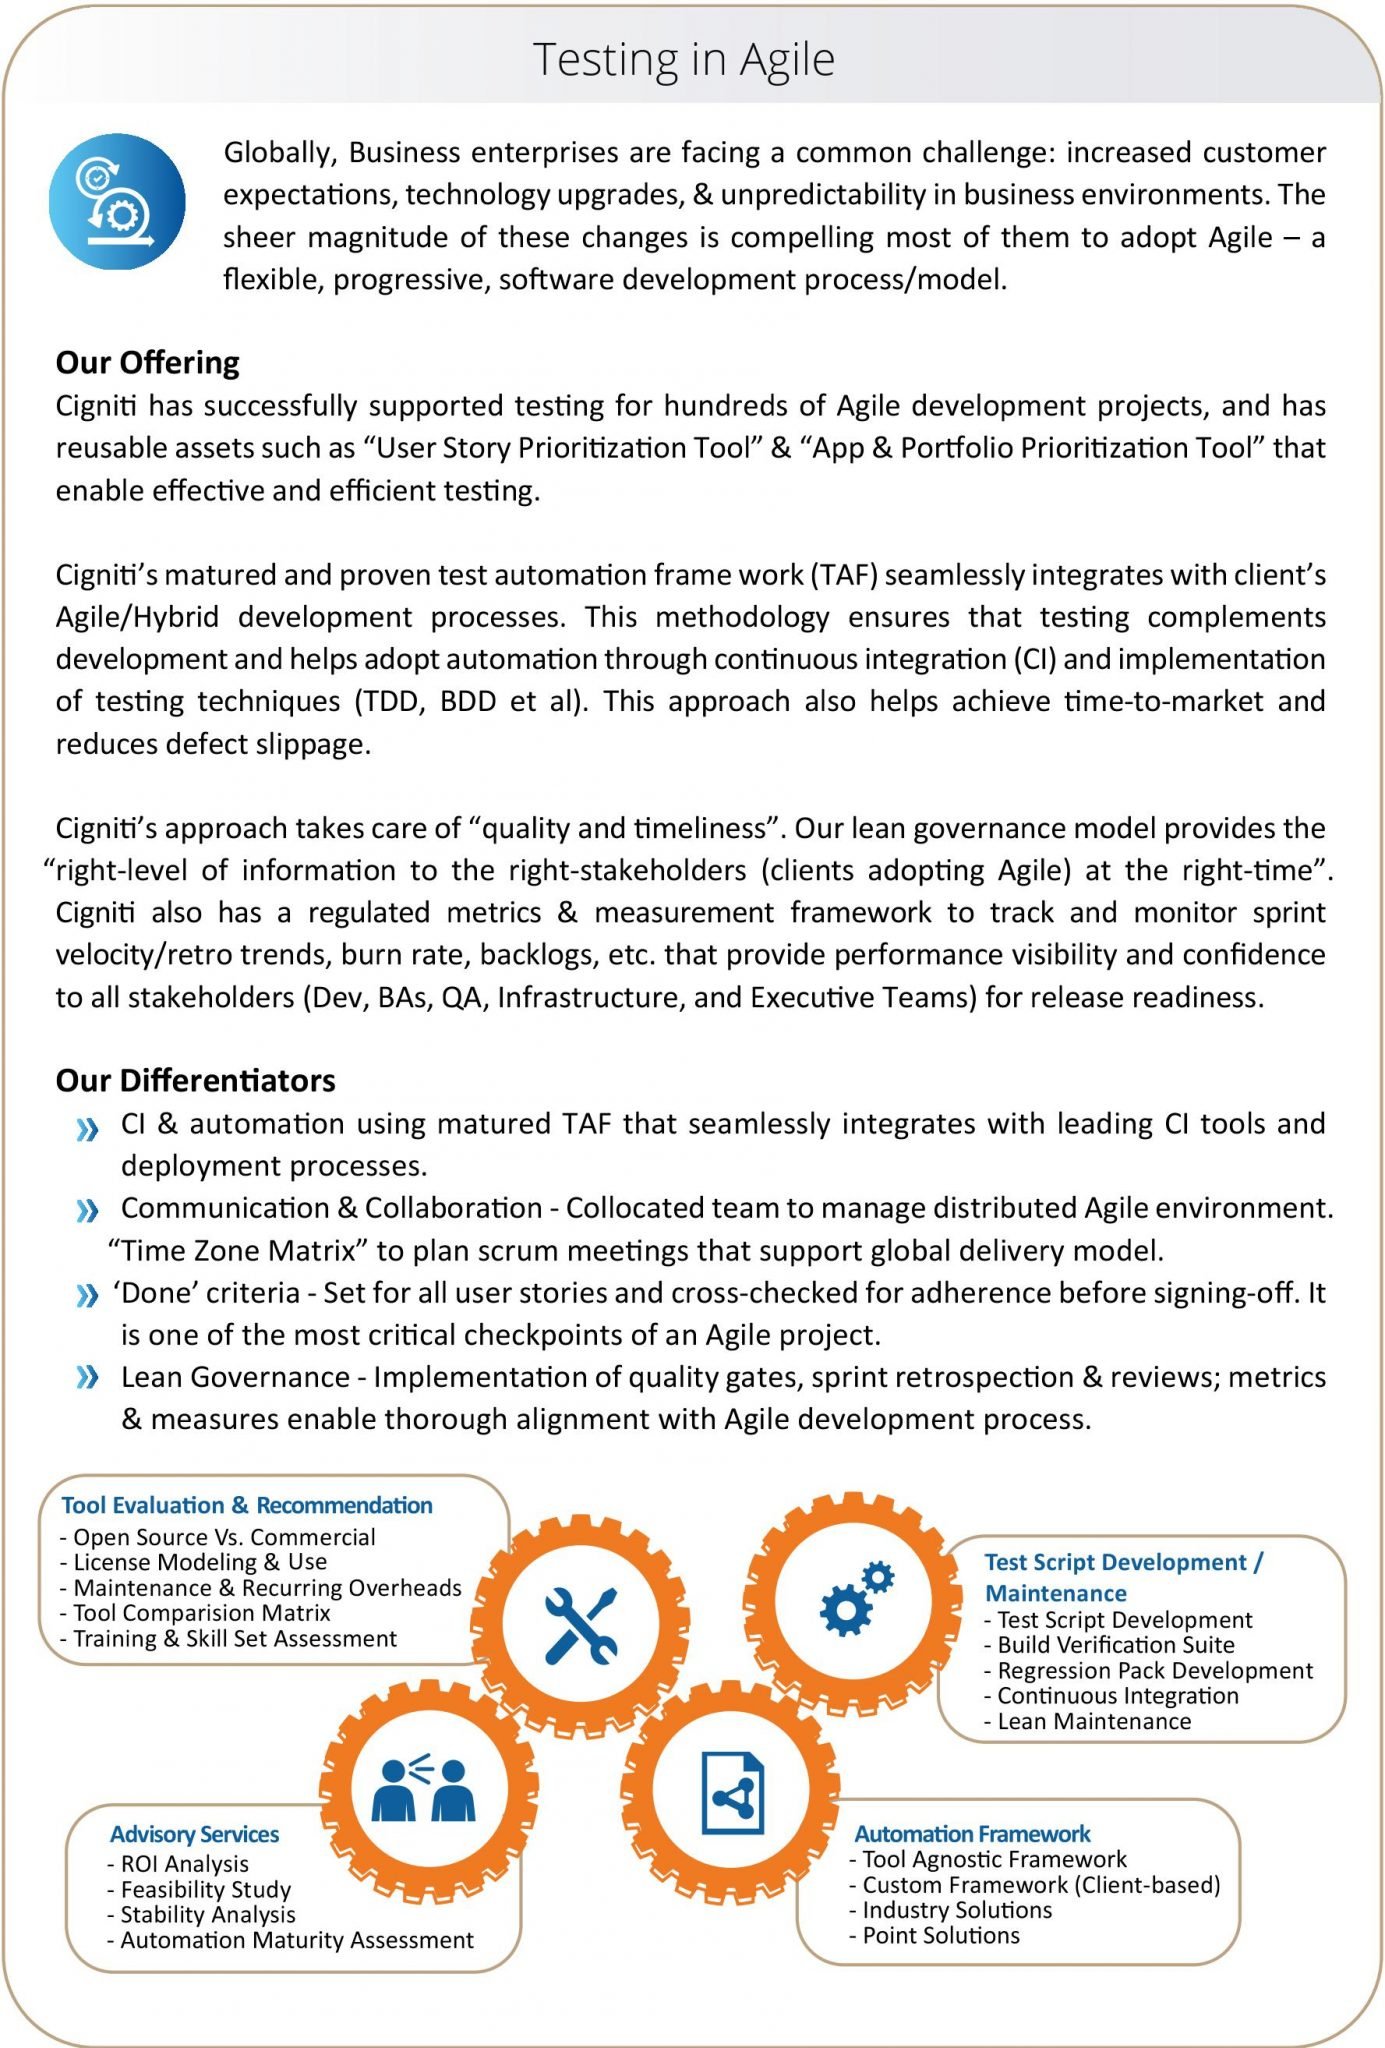 services corporate overview technologies agile testing service sheet